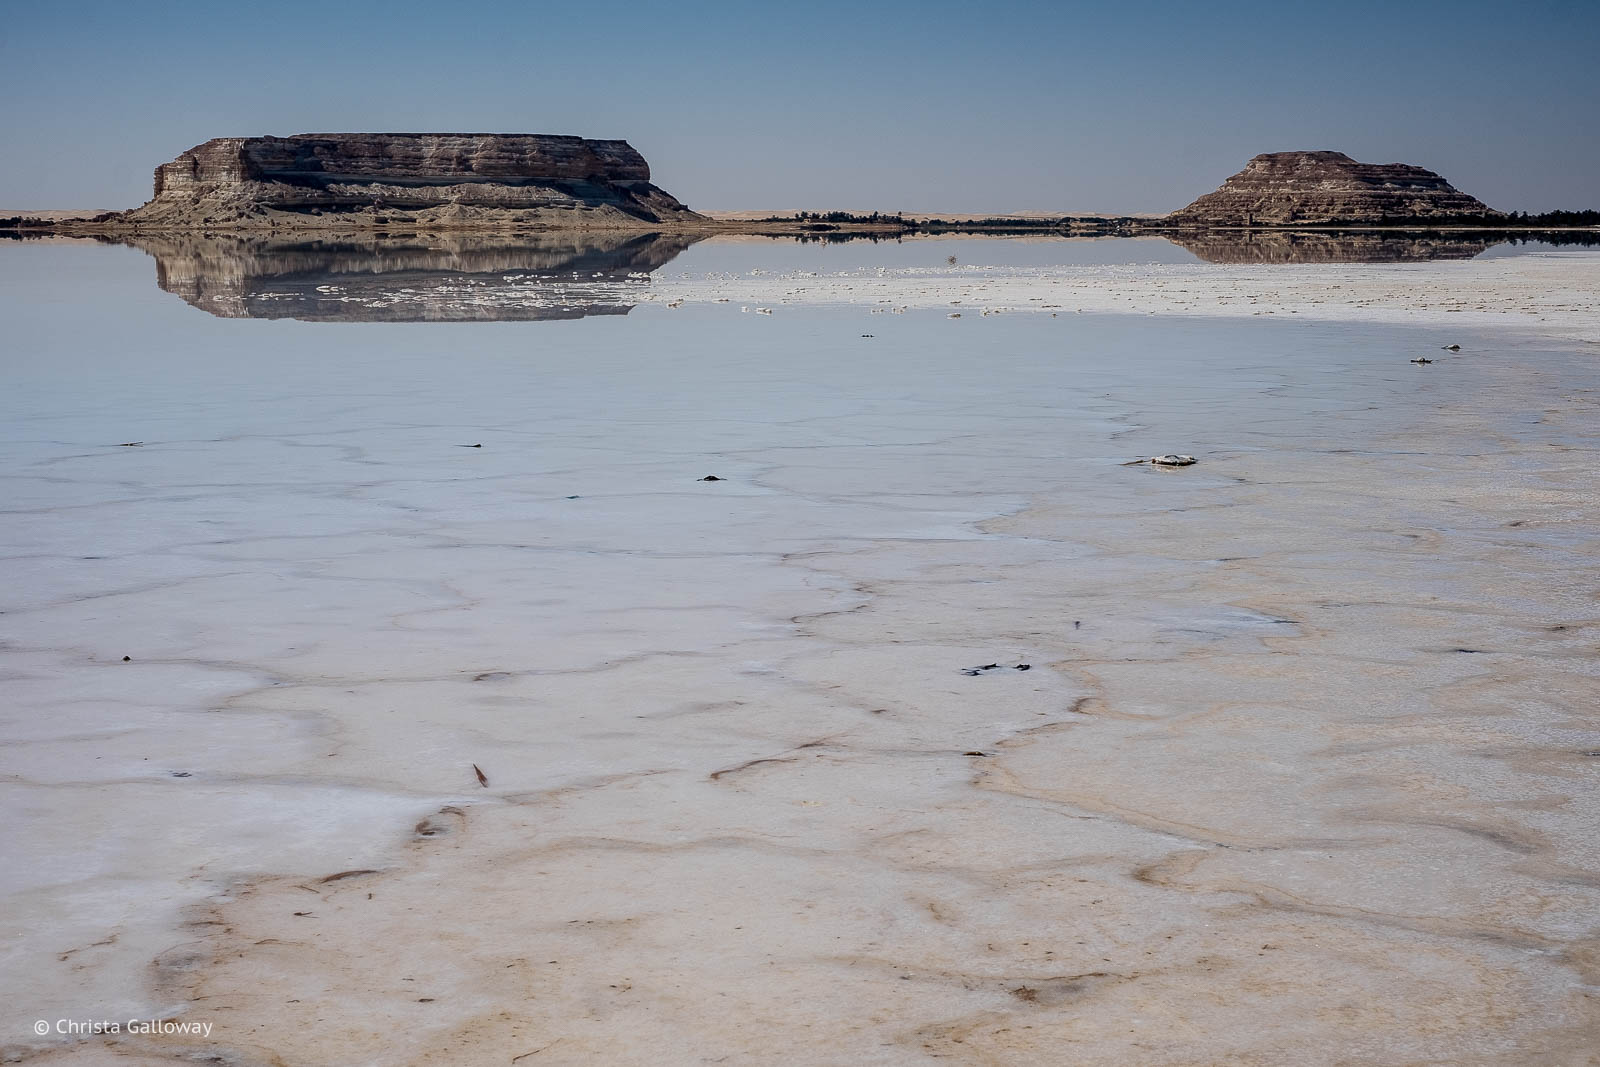 The salt-rimmed Siwa Lake near Siwa, Egypt.